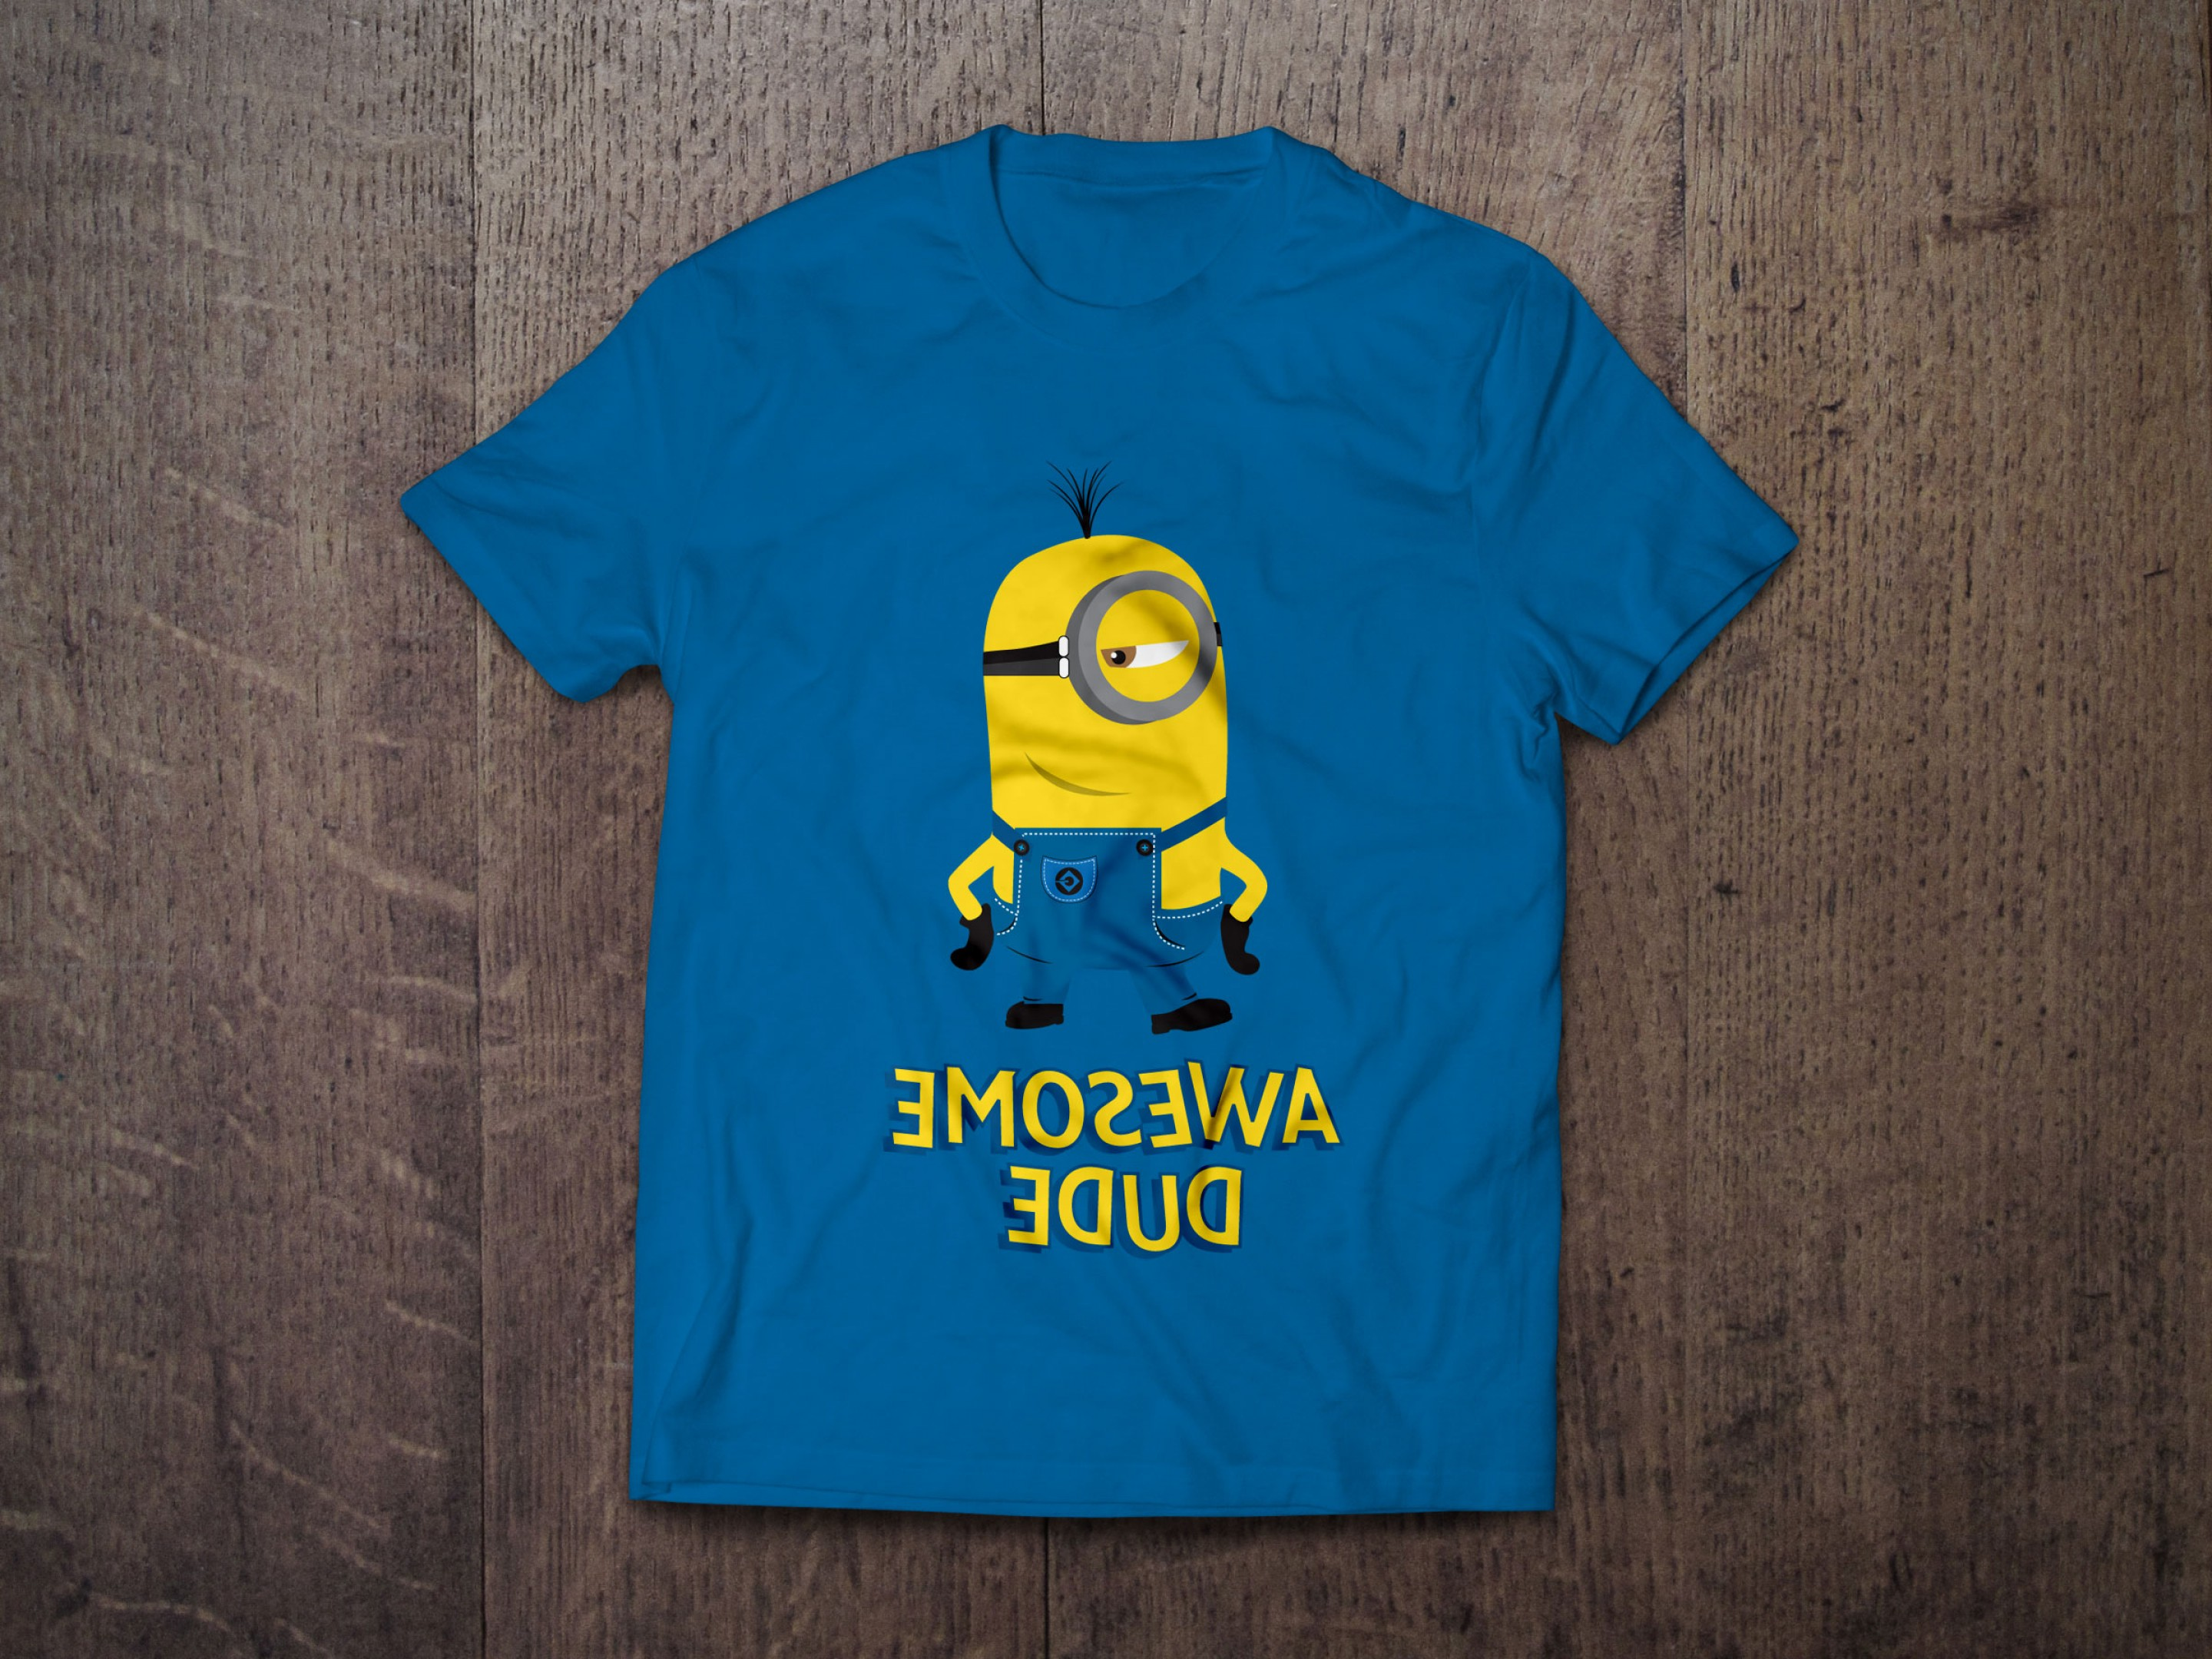 Real Name From Despicable Me Vectors: Despicable Me Vector Minion T Shirt Designs In Ai Eps